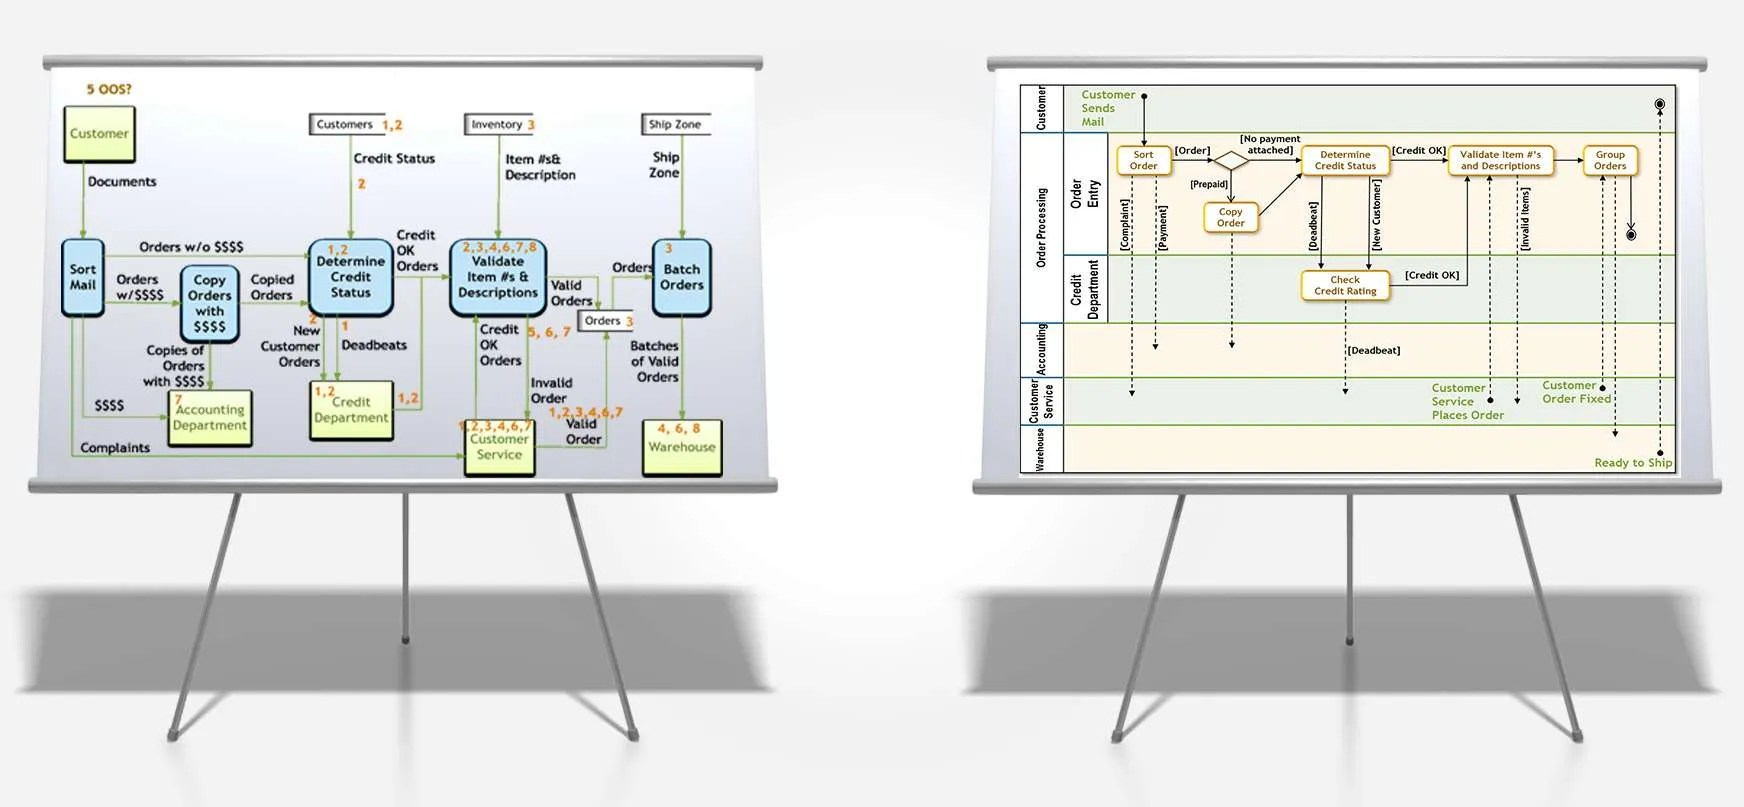 data flow diagrams vs activity diagrams which to use when Physical Data Flow Diagram fundamentally, a dfd shows the transformation (processes), transportation (data flows), and storage (data stores) of data through the business process